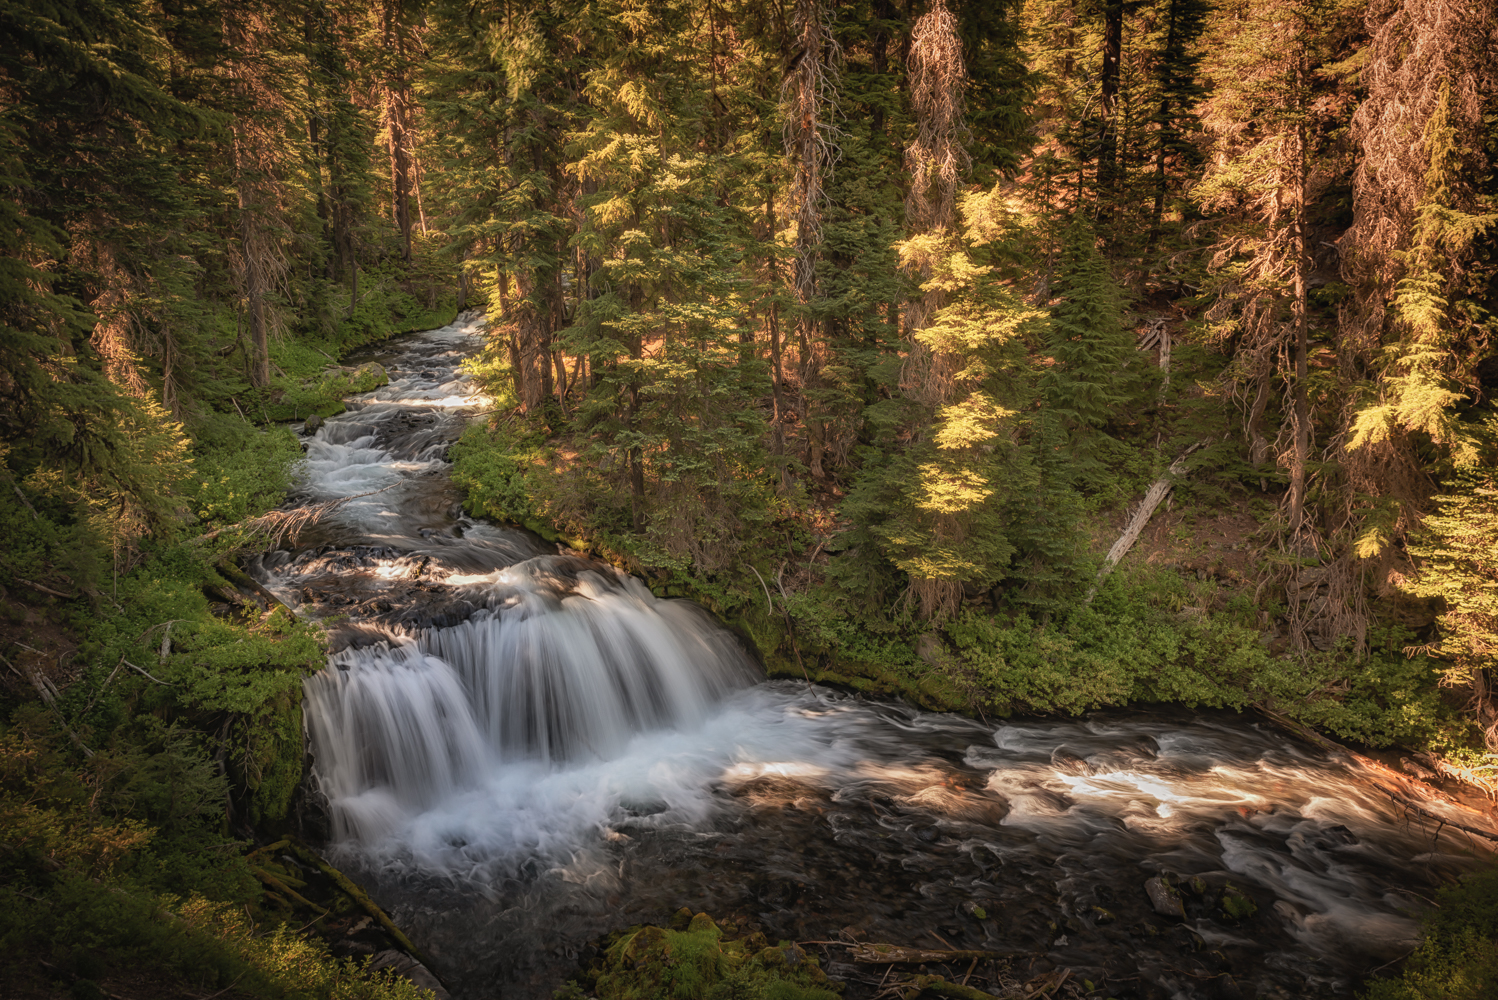 Fall Creek cascades in late afternoon light